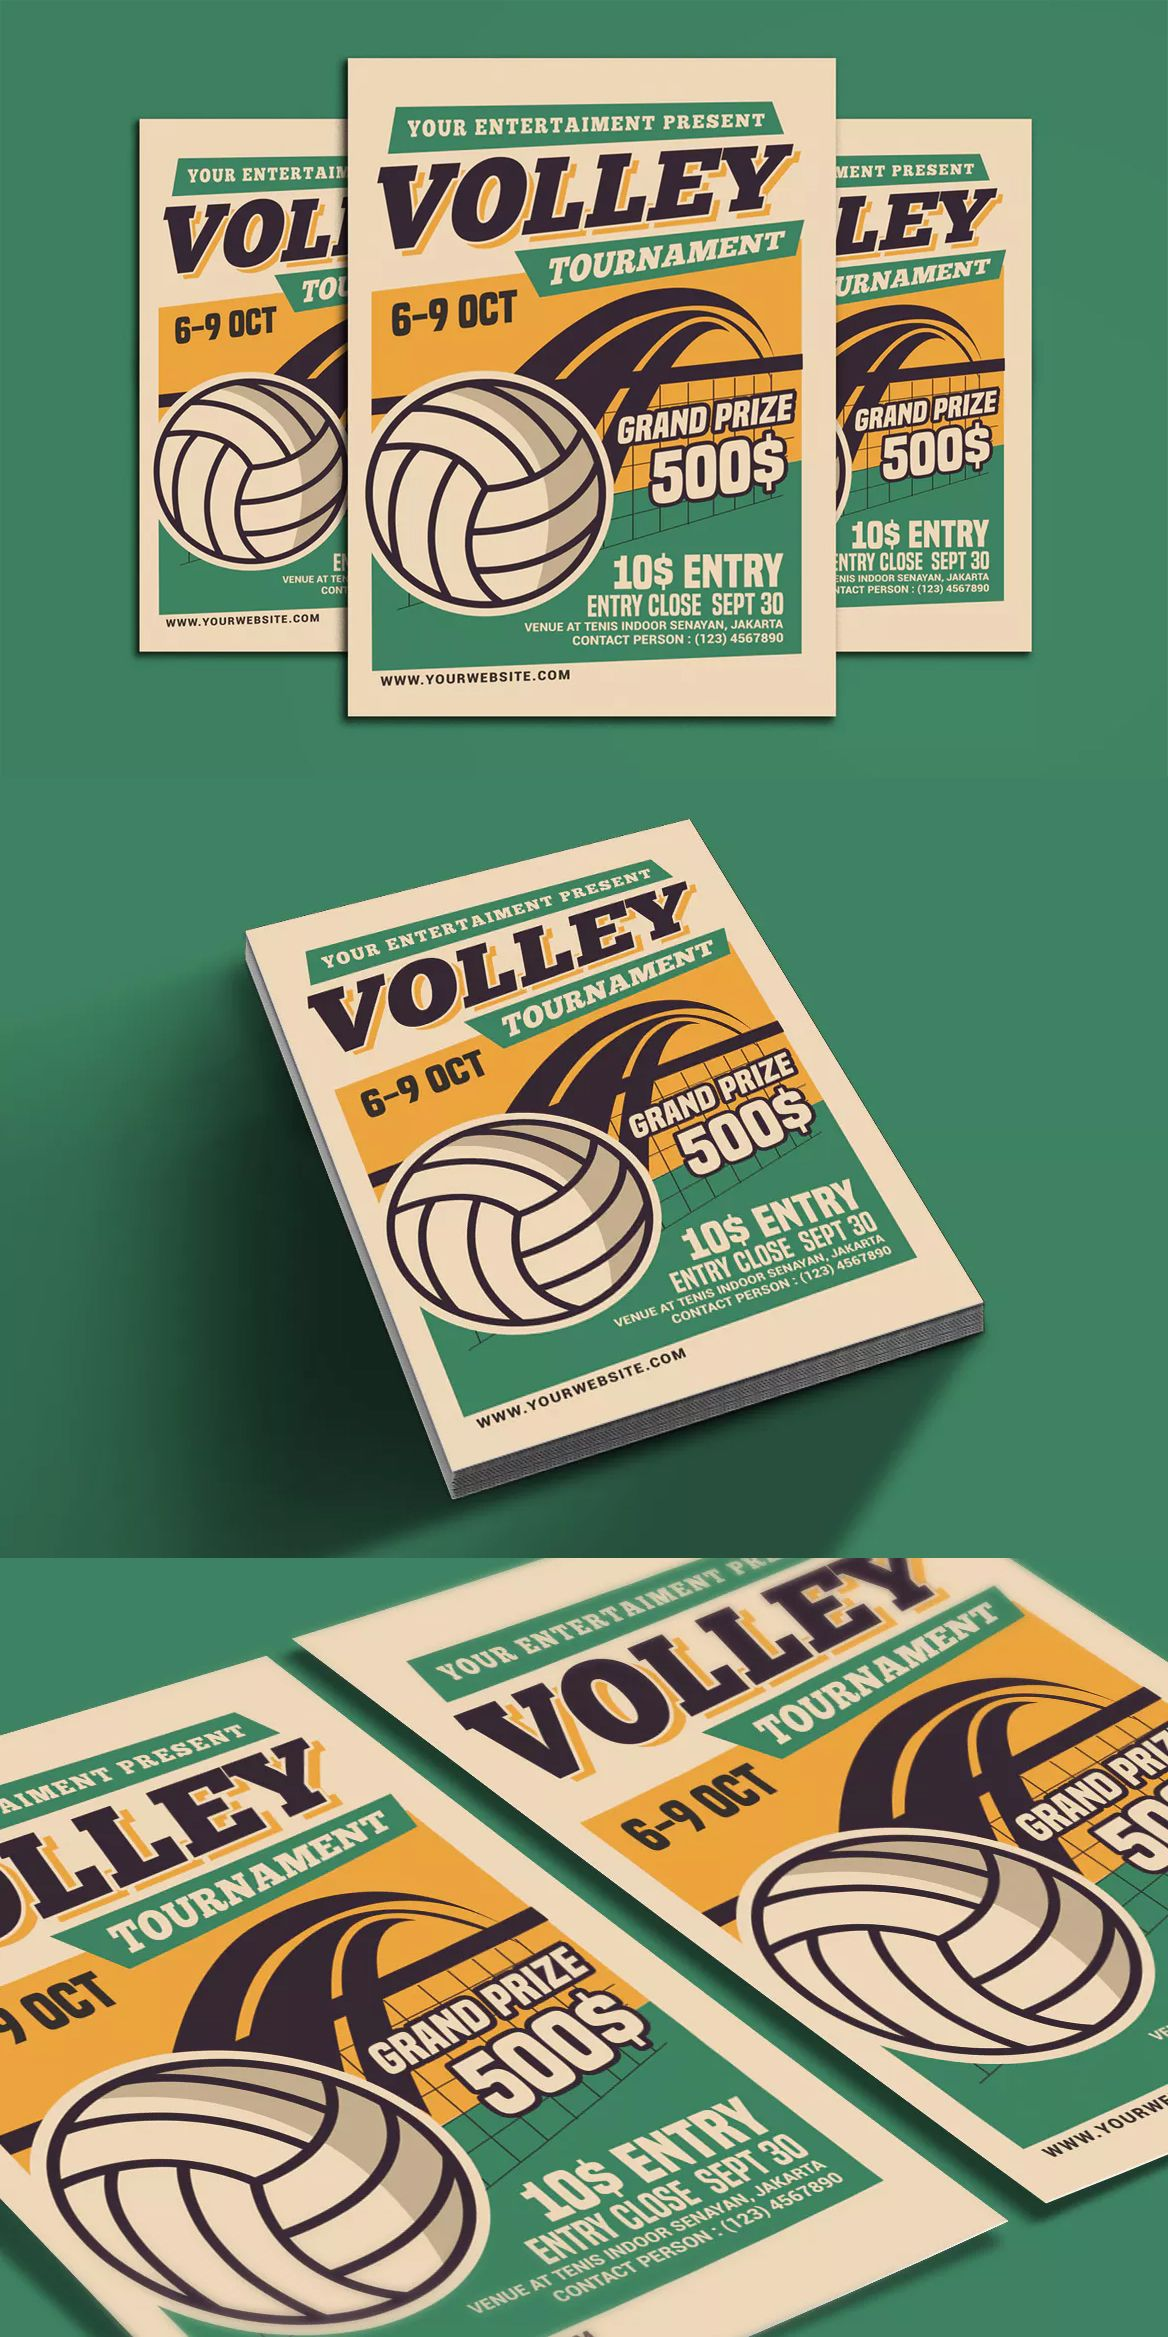 Volleyball Tournament Flyer By Muhamadiqbalhidayat On Envato Elements Volleyball Tournaments Volleyball Designs Sports Graphic Design